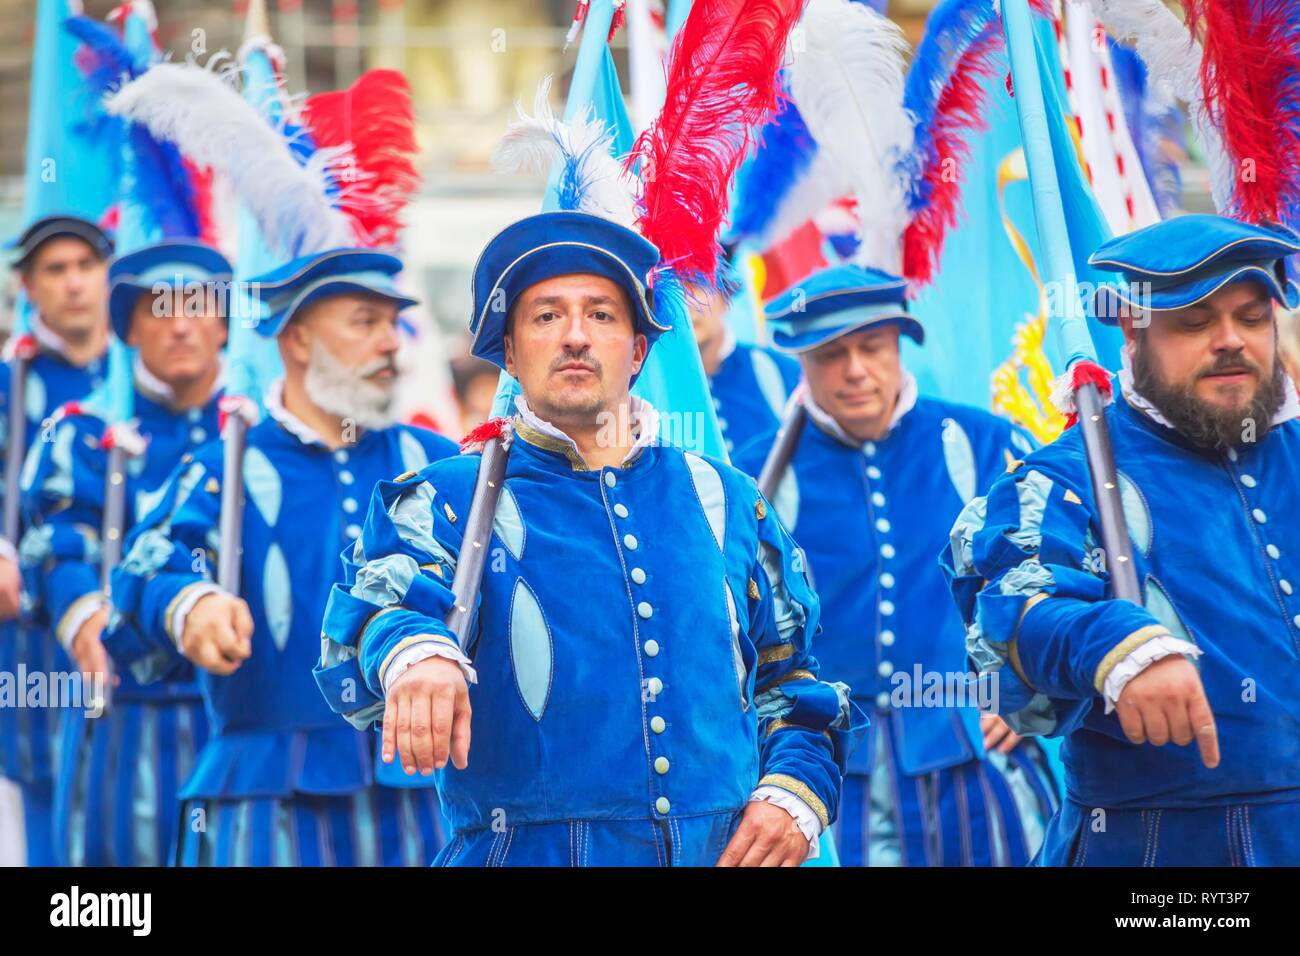 Participants in Calcio Storico Fiorentino festival marching through the city center in historical costumes, Florence, Tuscany Stock Photo